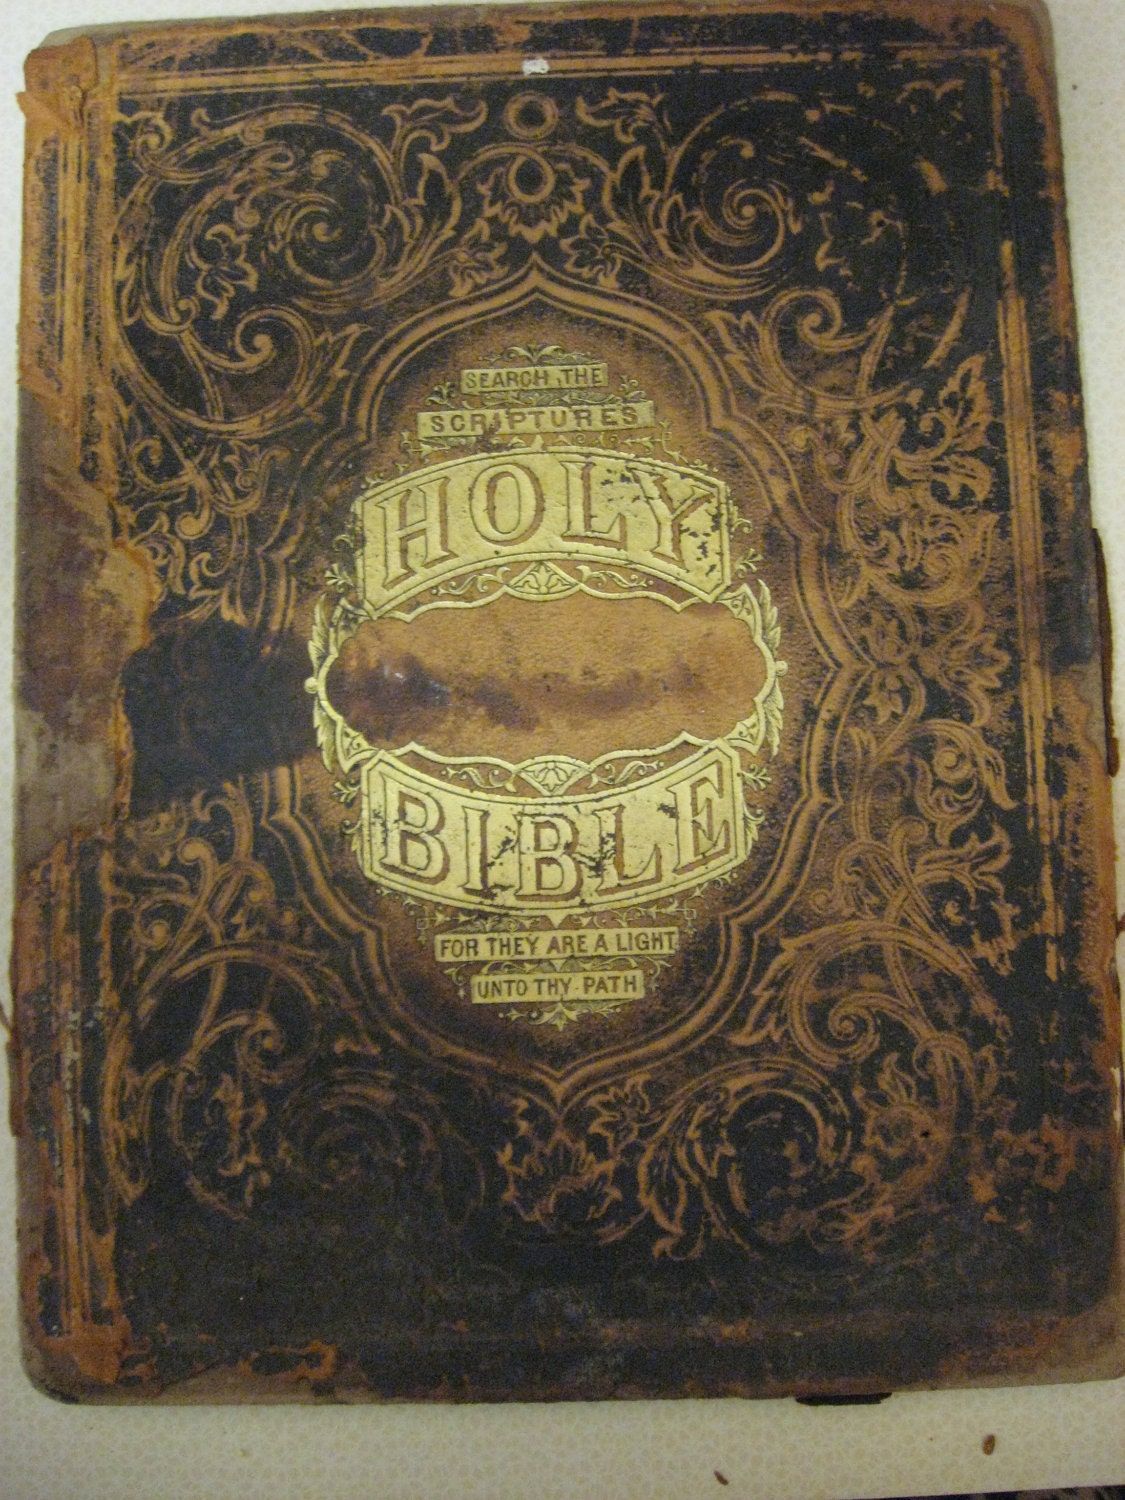 Old Book Covers For Sale : Antique holy bible book cover tooled leather gold gilt back is